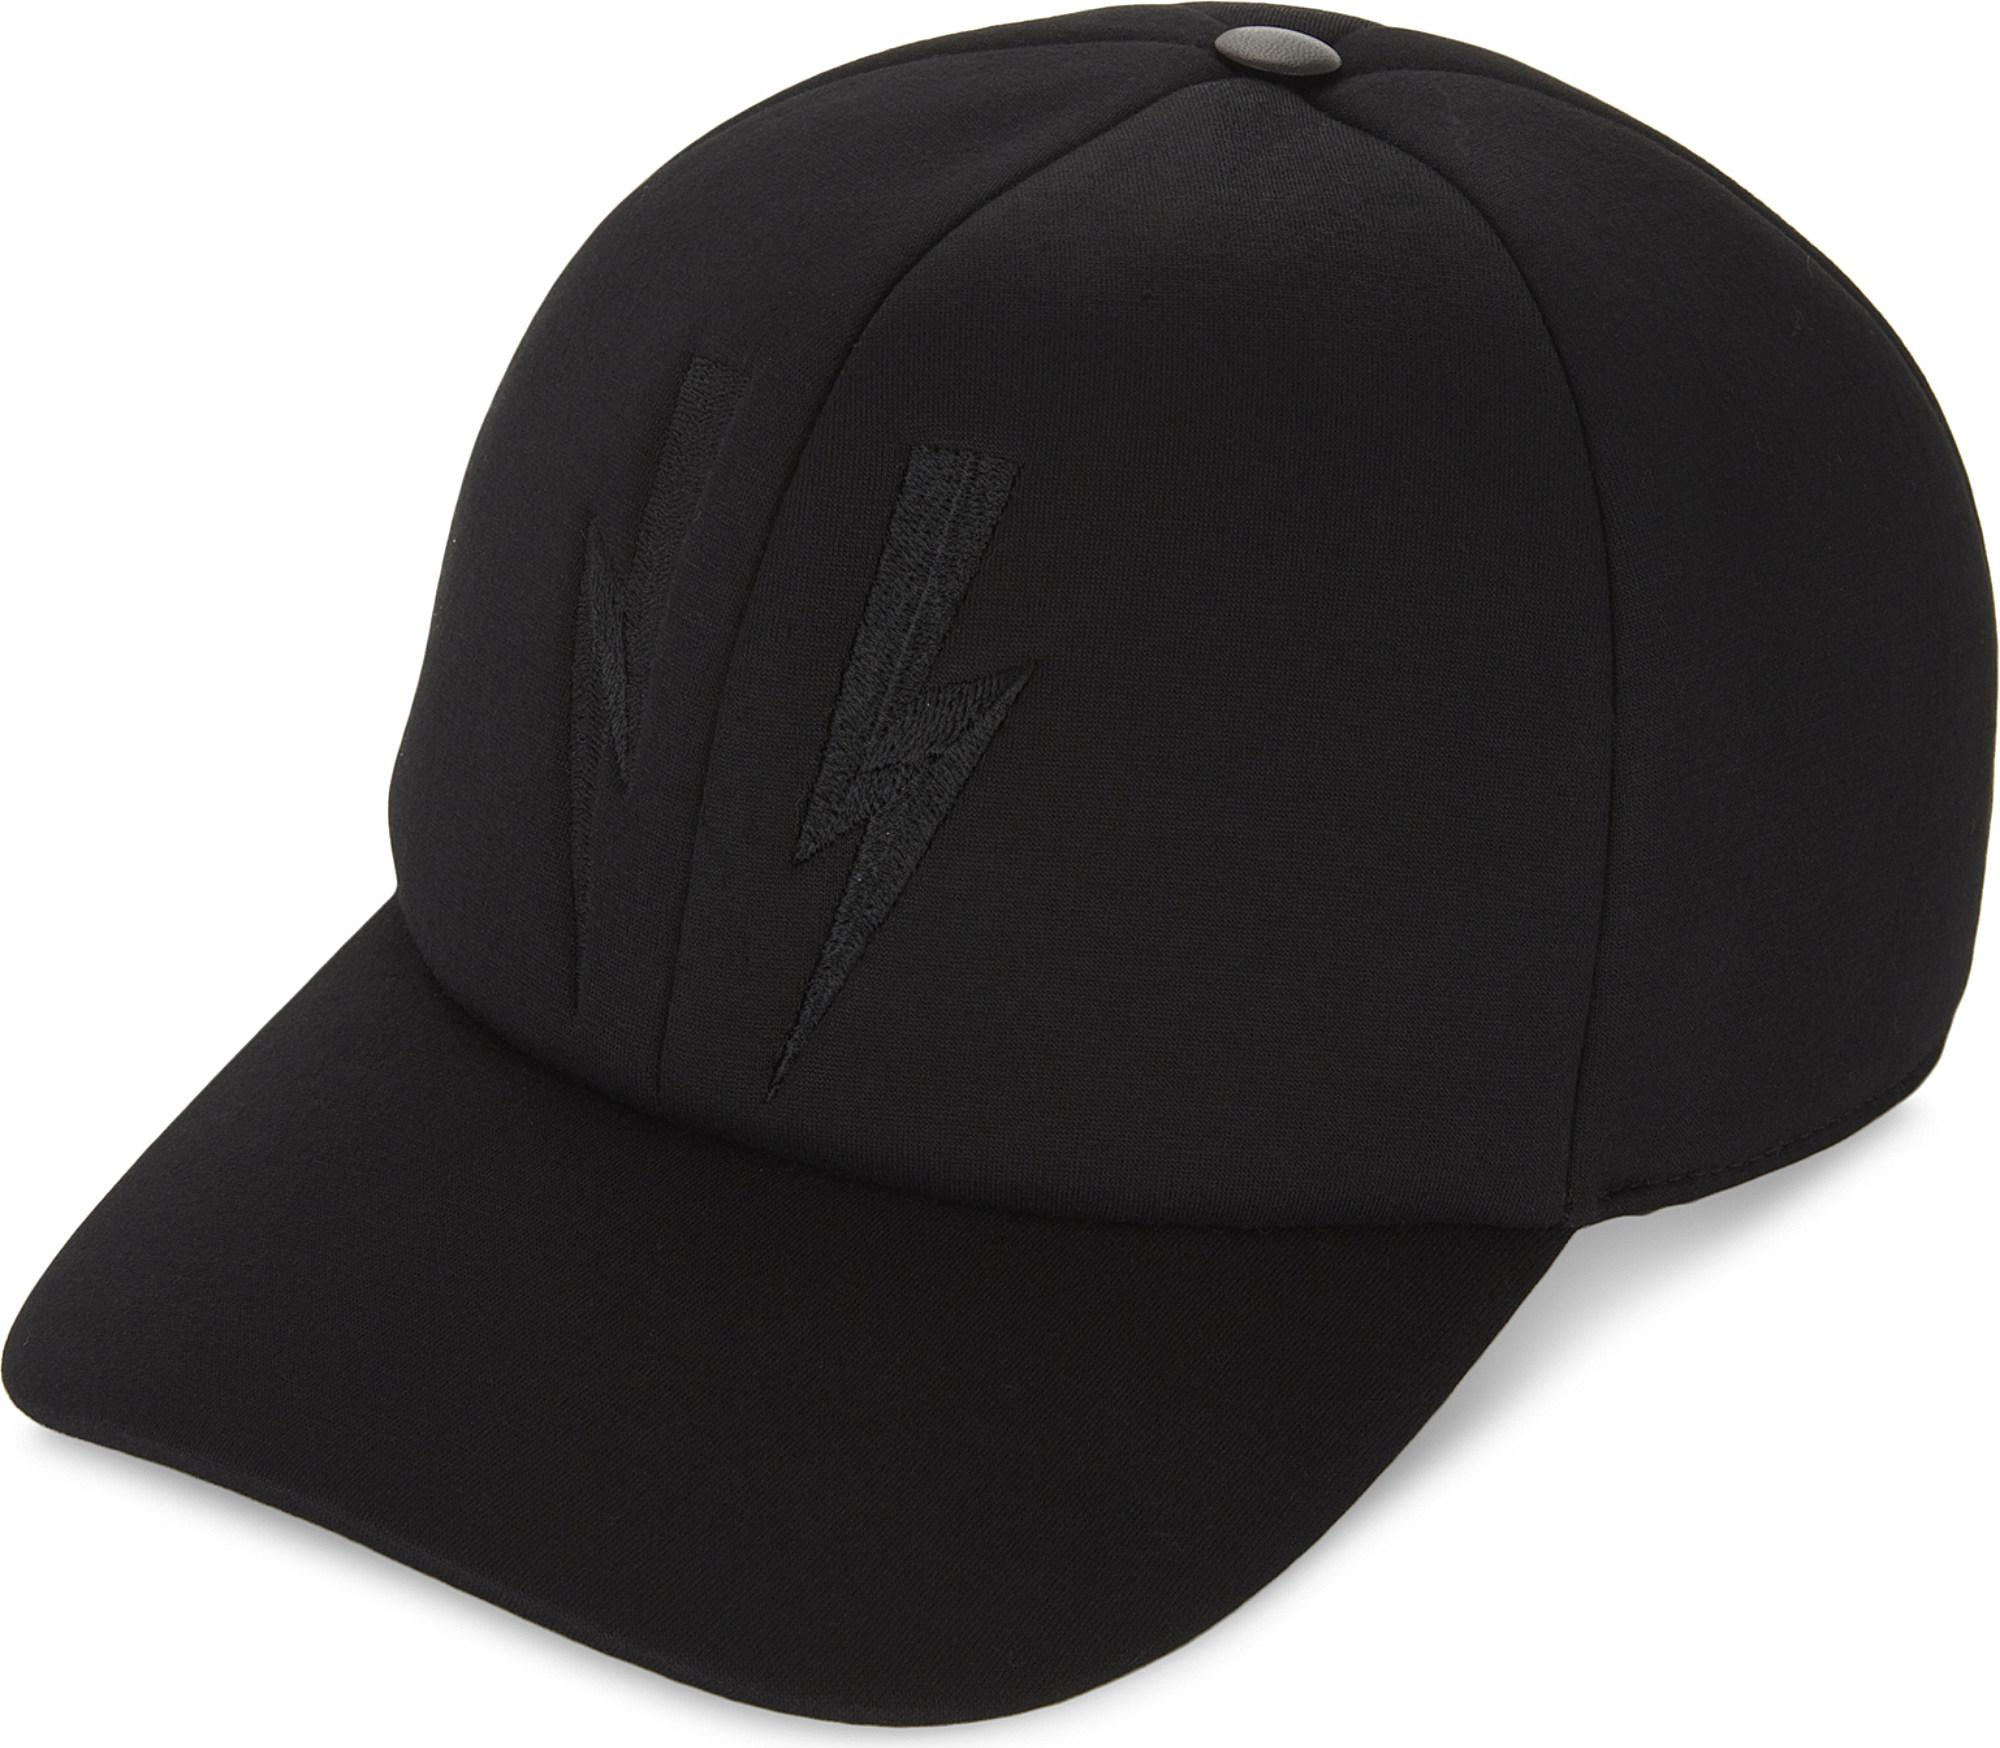 Lyst - Neil Barrett Lightning Bolt Embroidered Cap in Black for Men d3a216e4498e